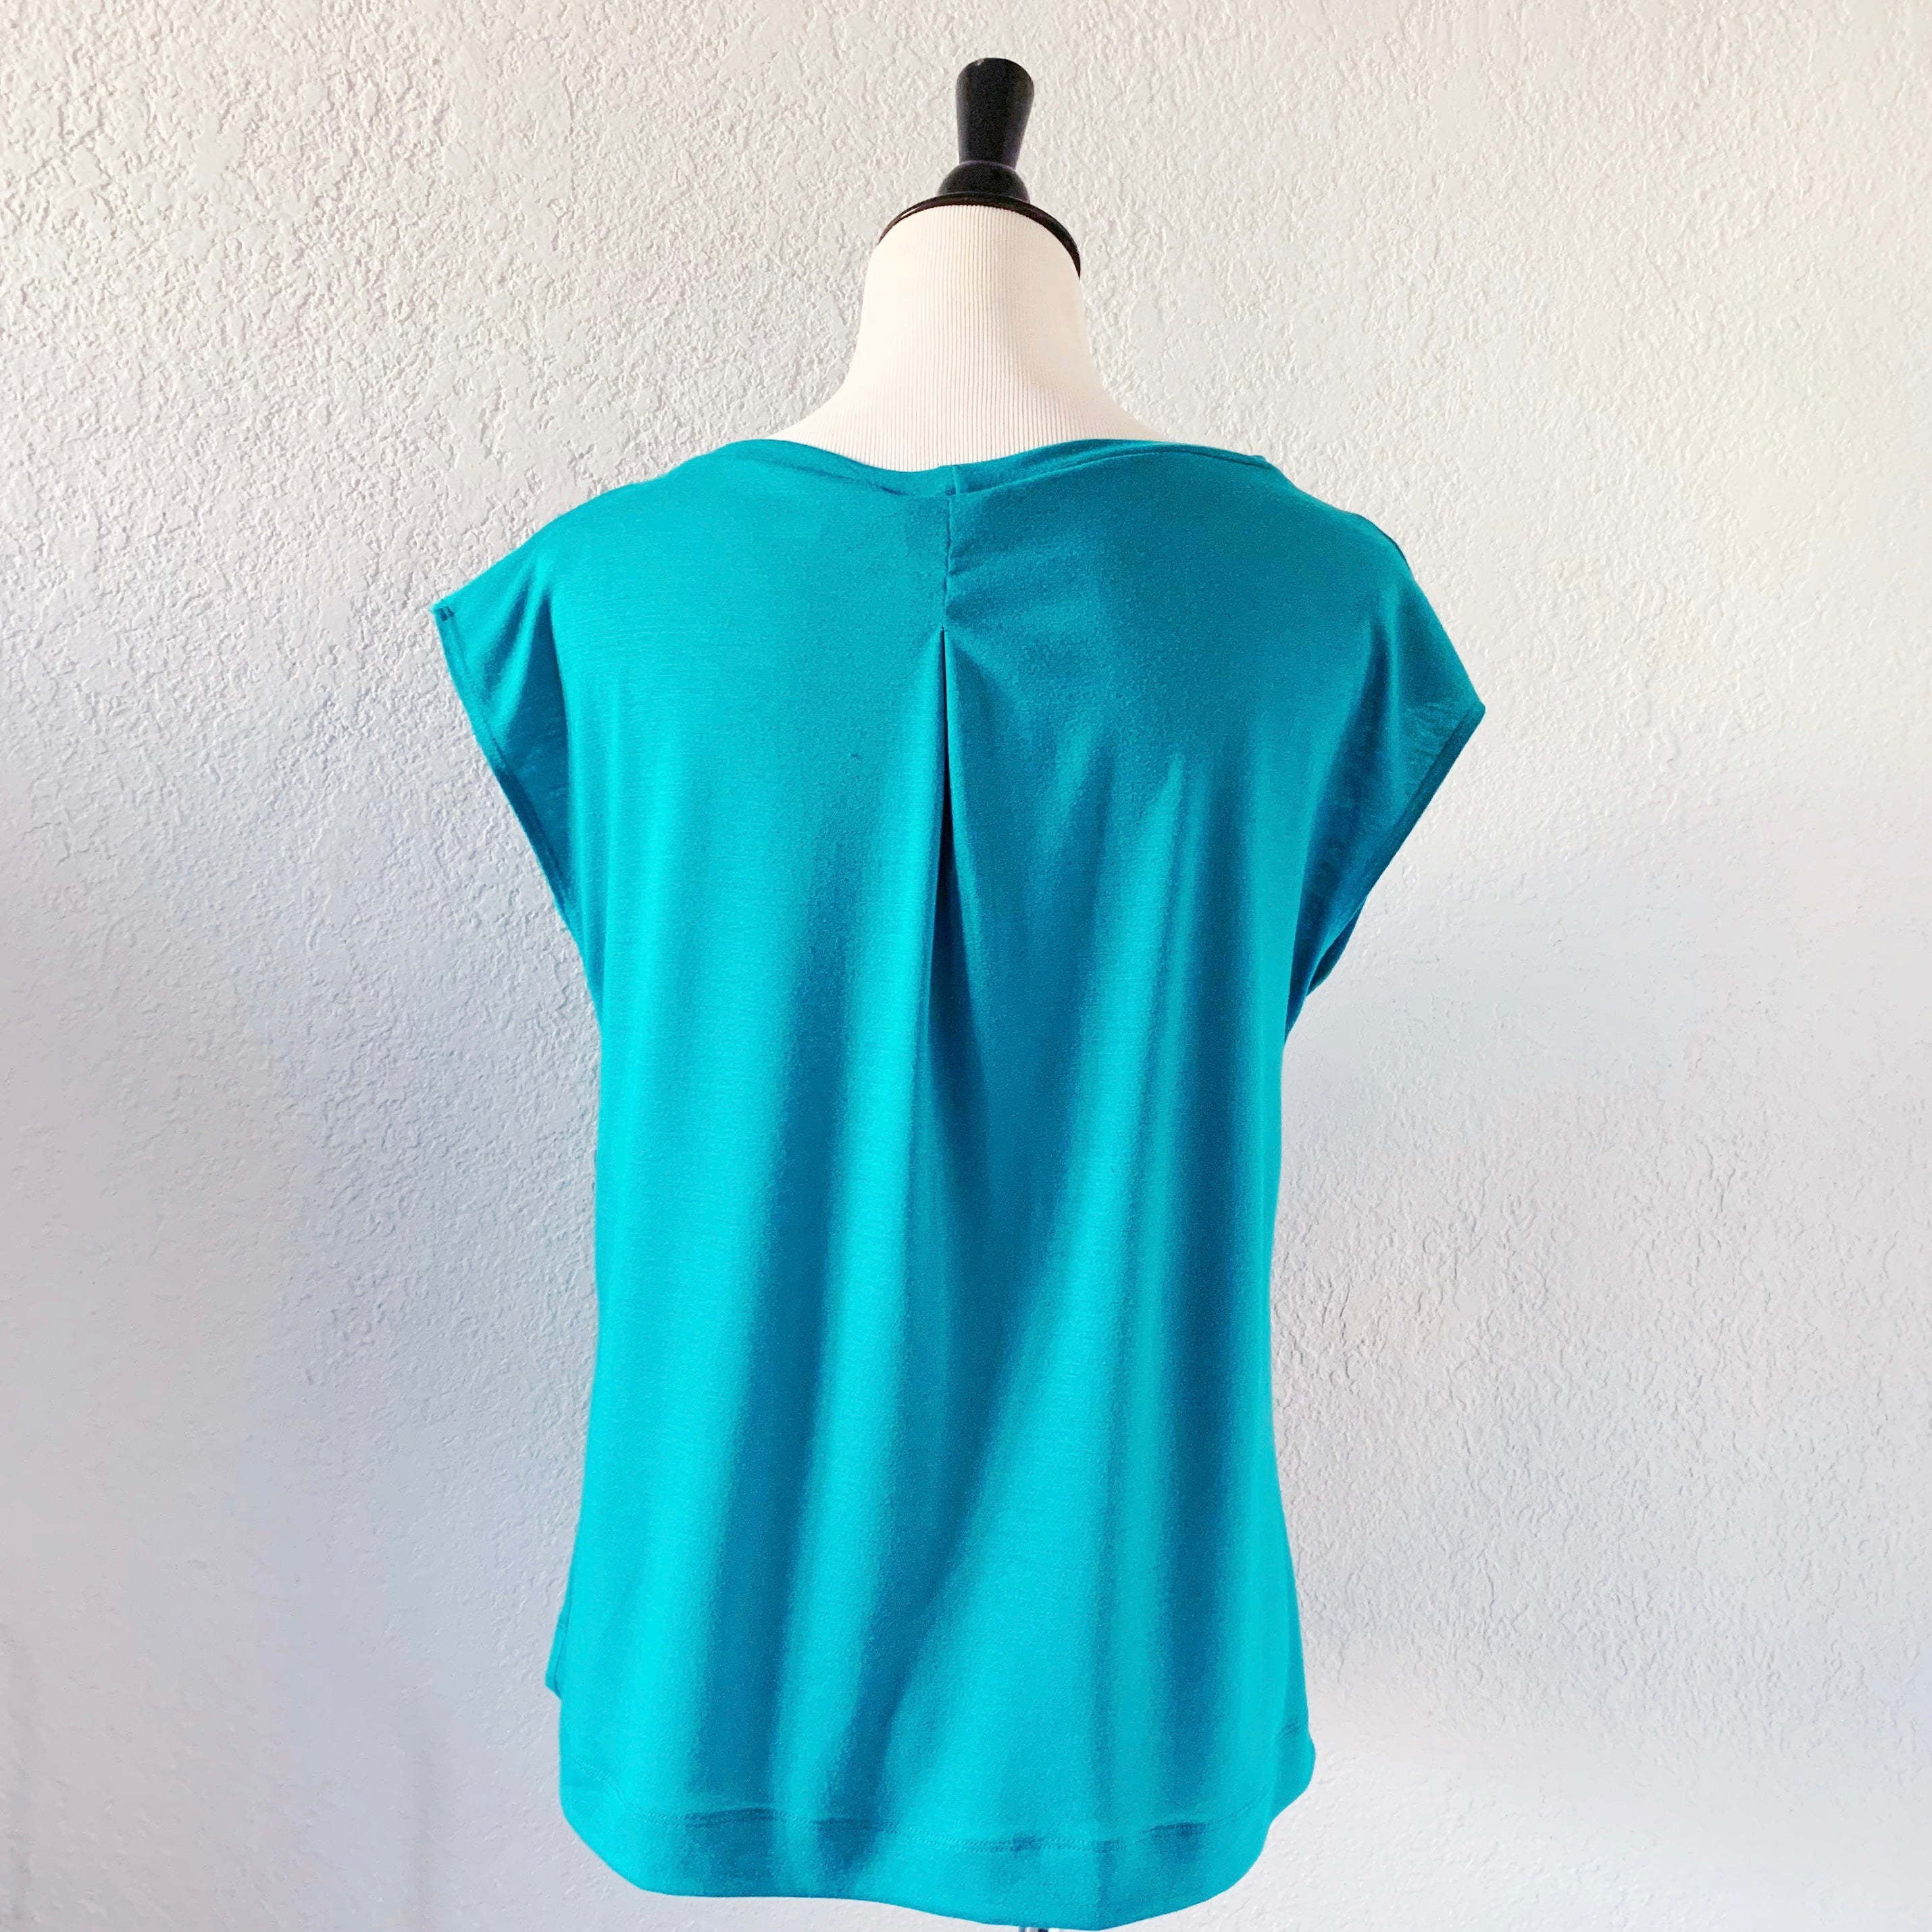 Single Tuck Drape Top - Aqua